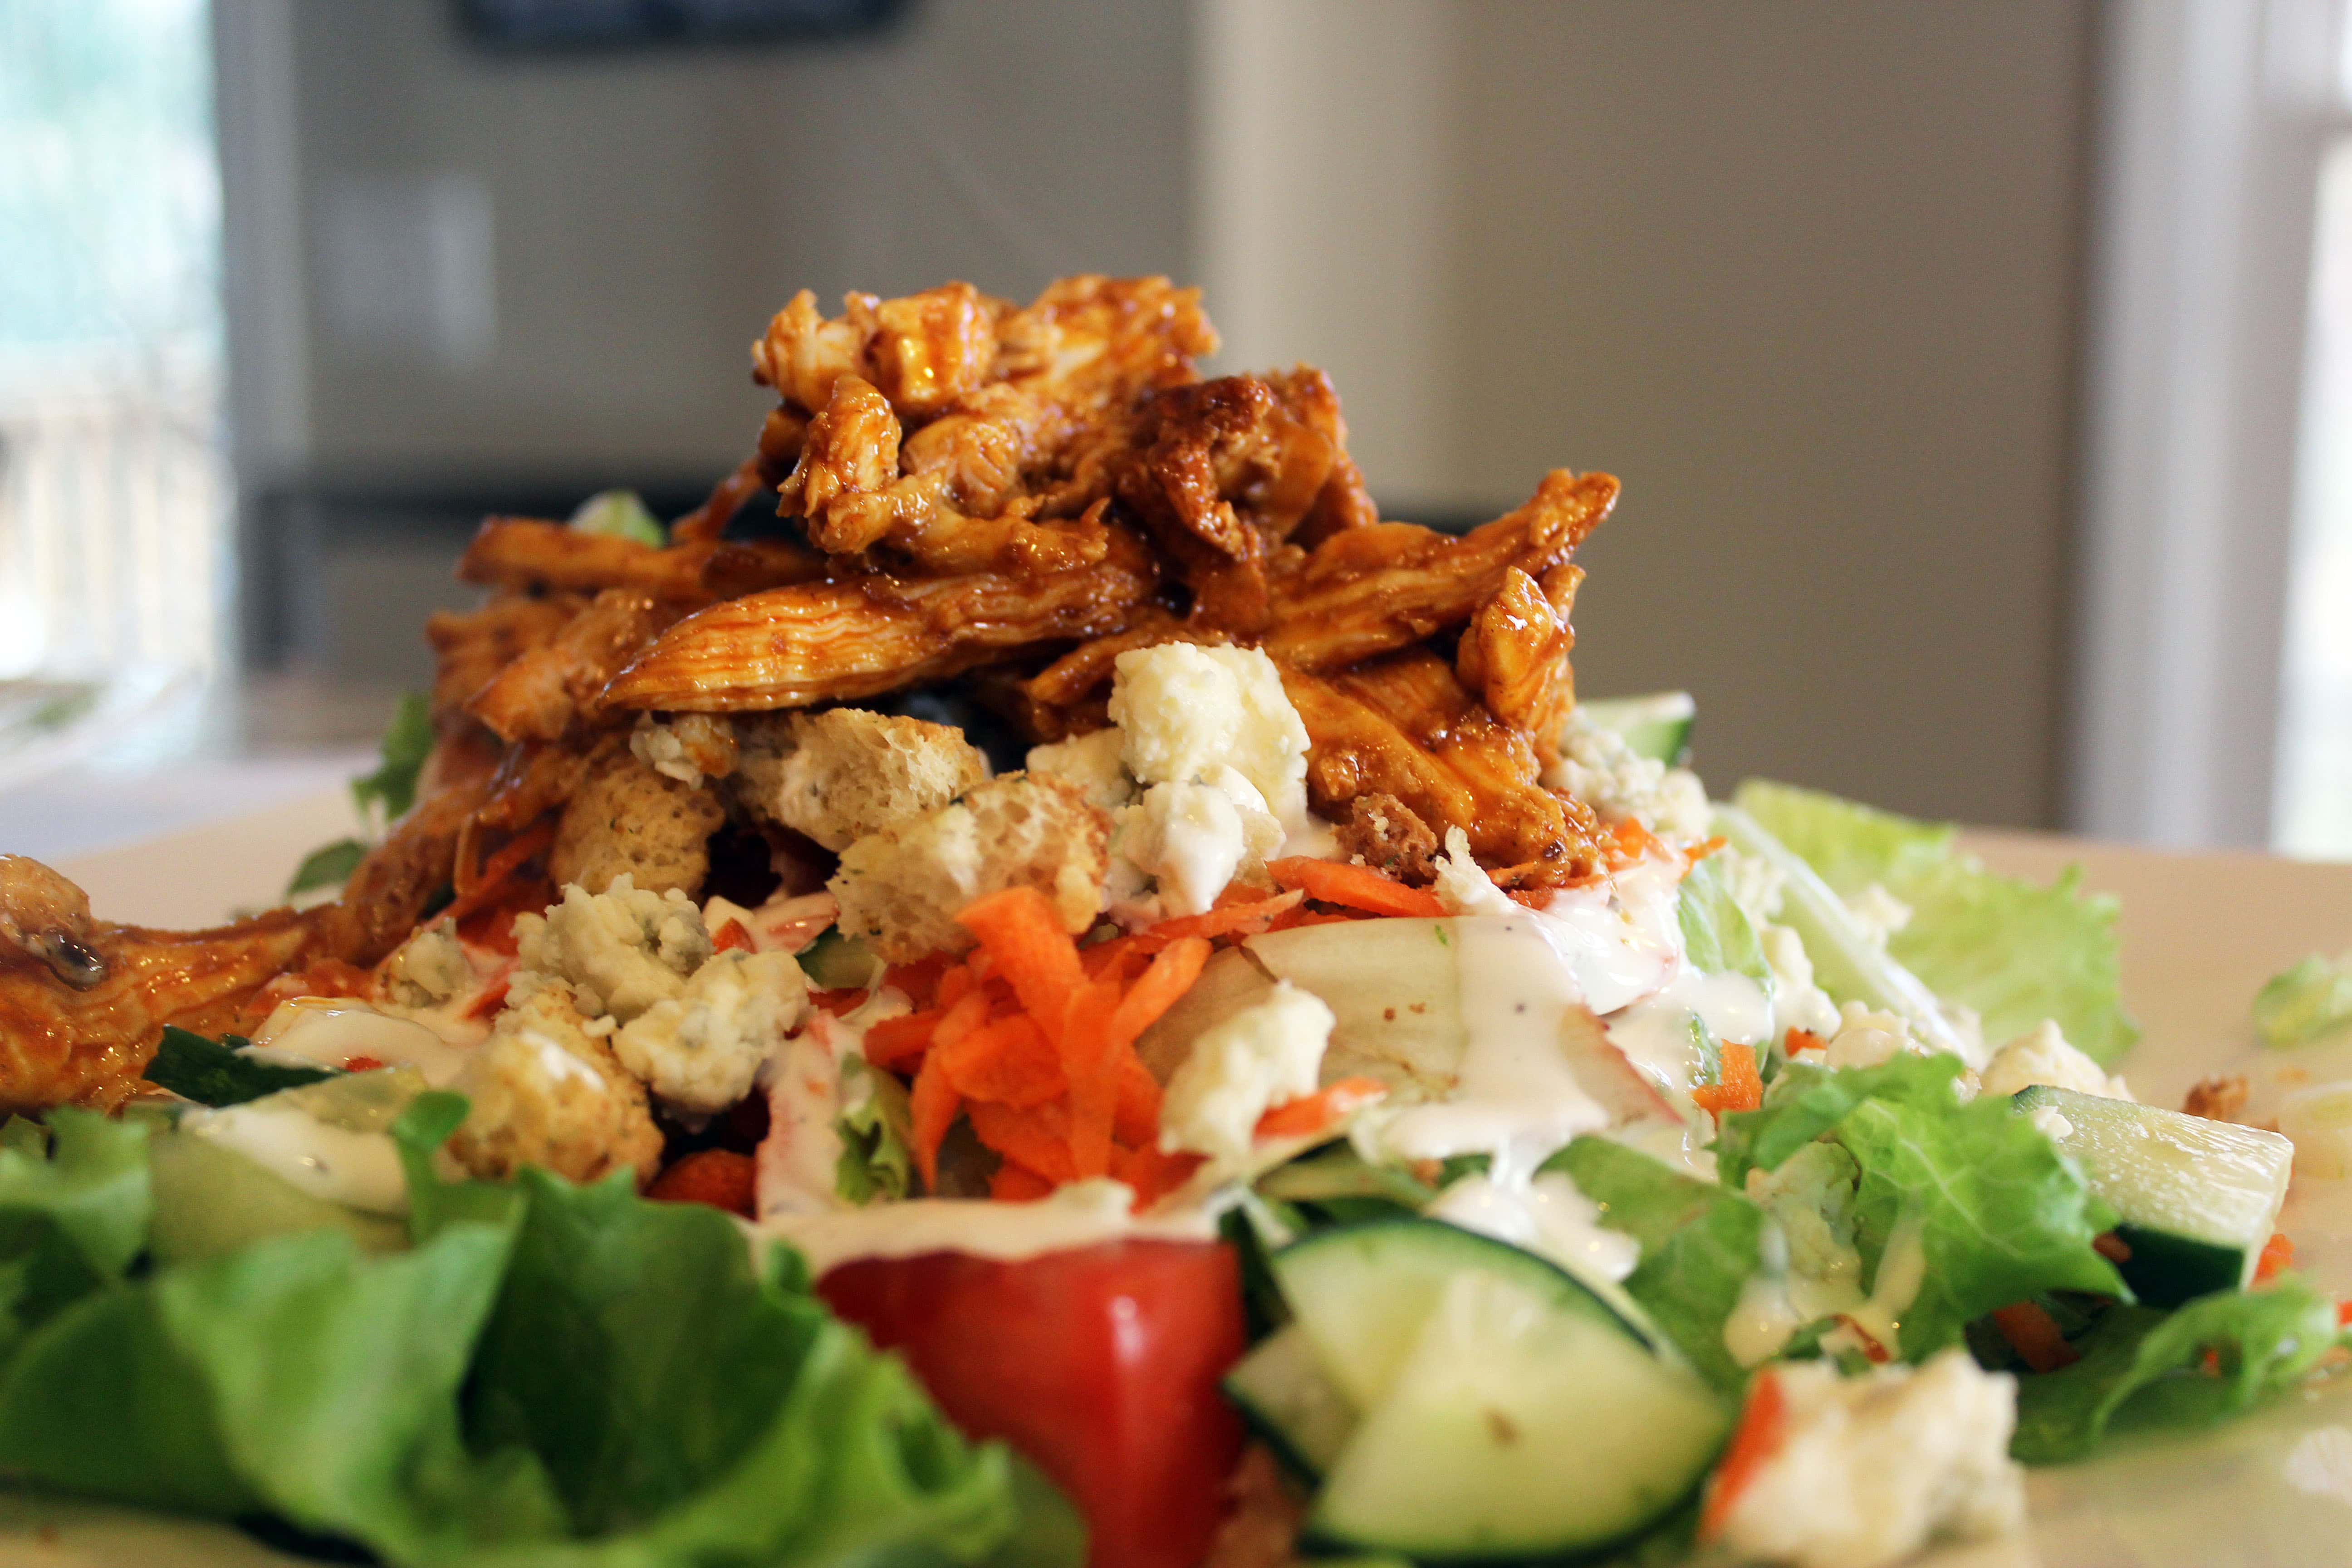 Salad with blue cheese crumbles